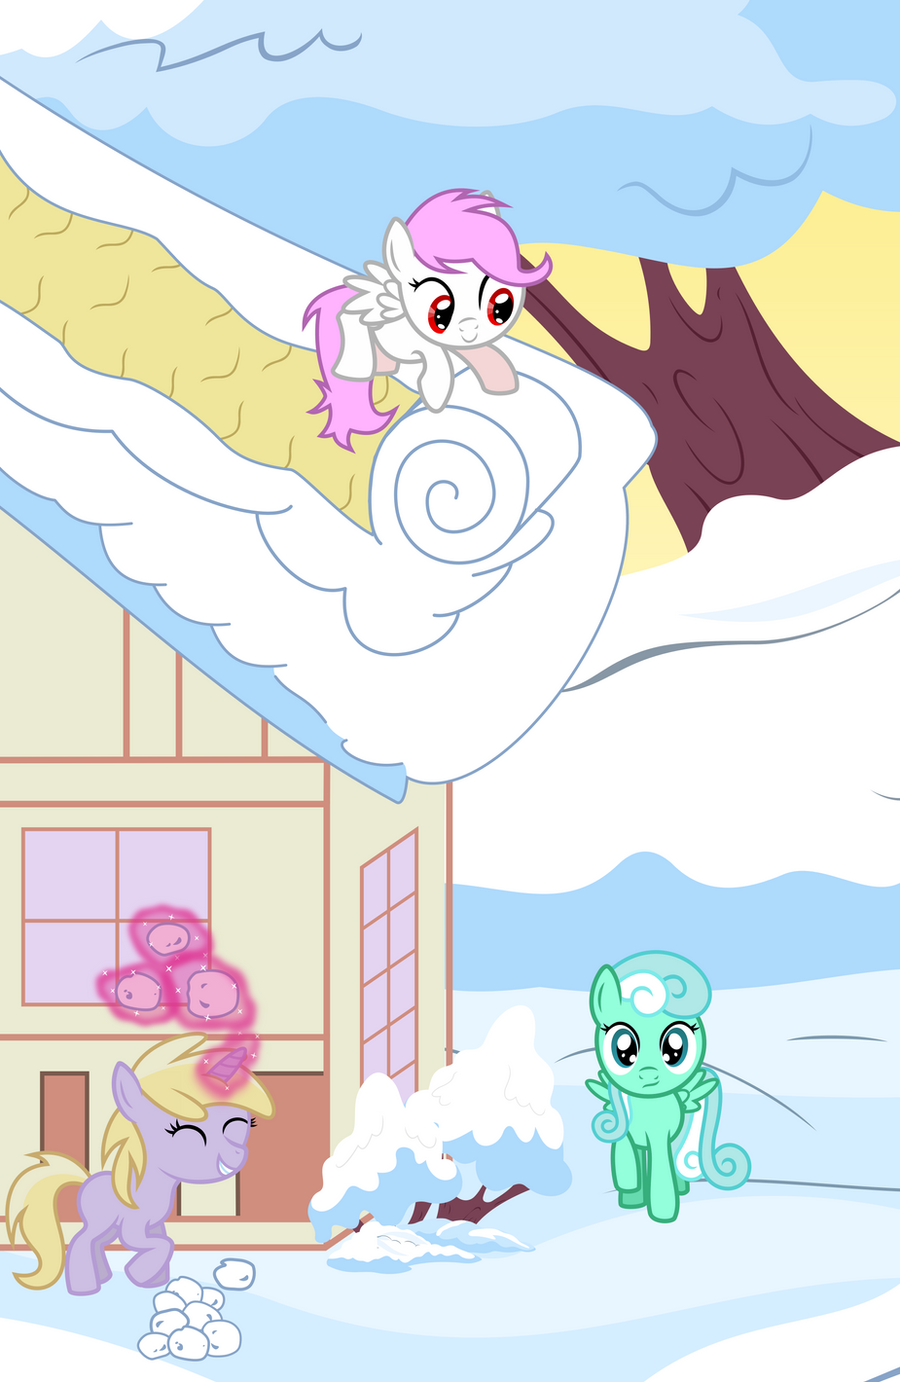 Sweet Song and Friends Play in the snow by Baka-Neku